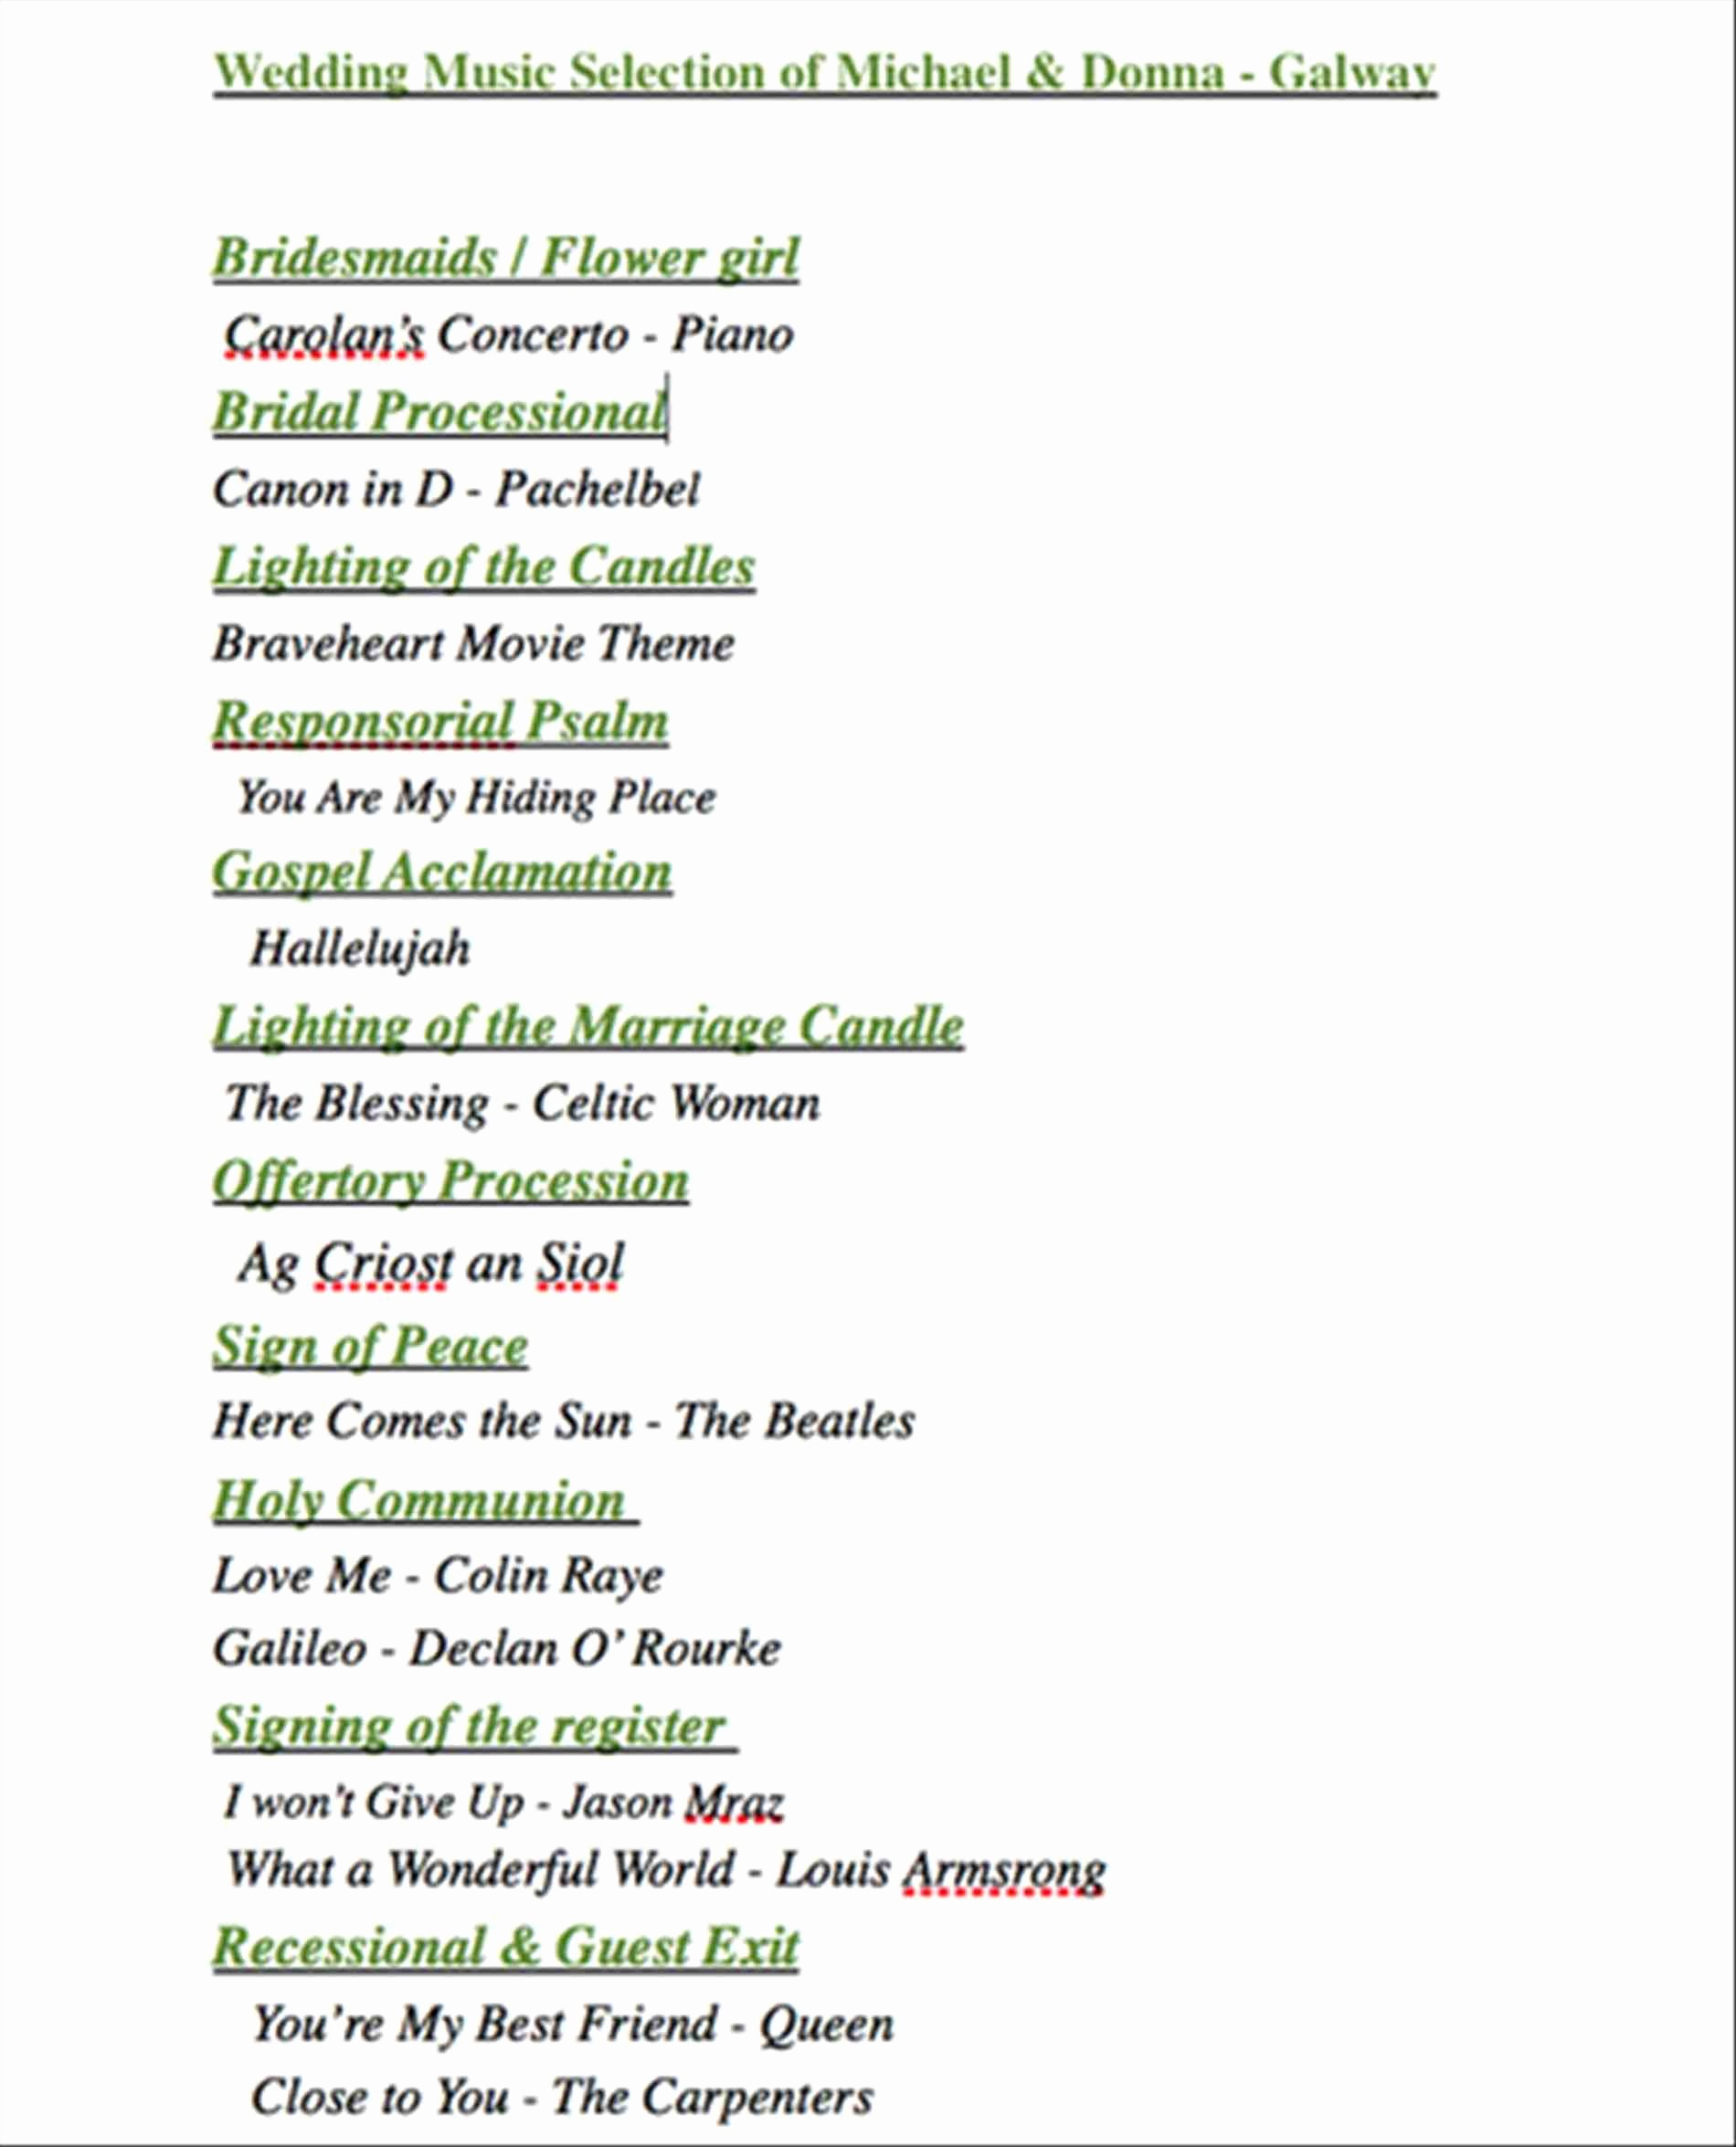 Wedding Ceremony song List Template Lovely List Wedding Ceremony songs